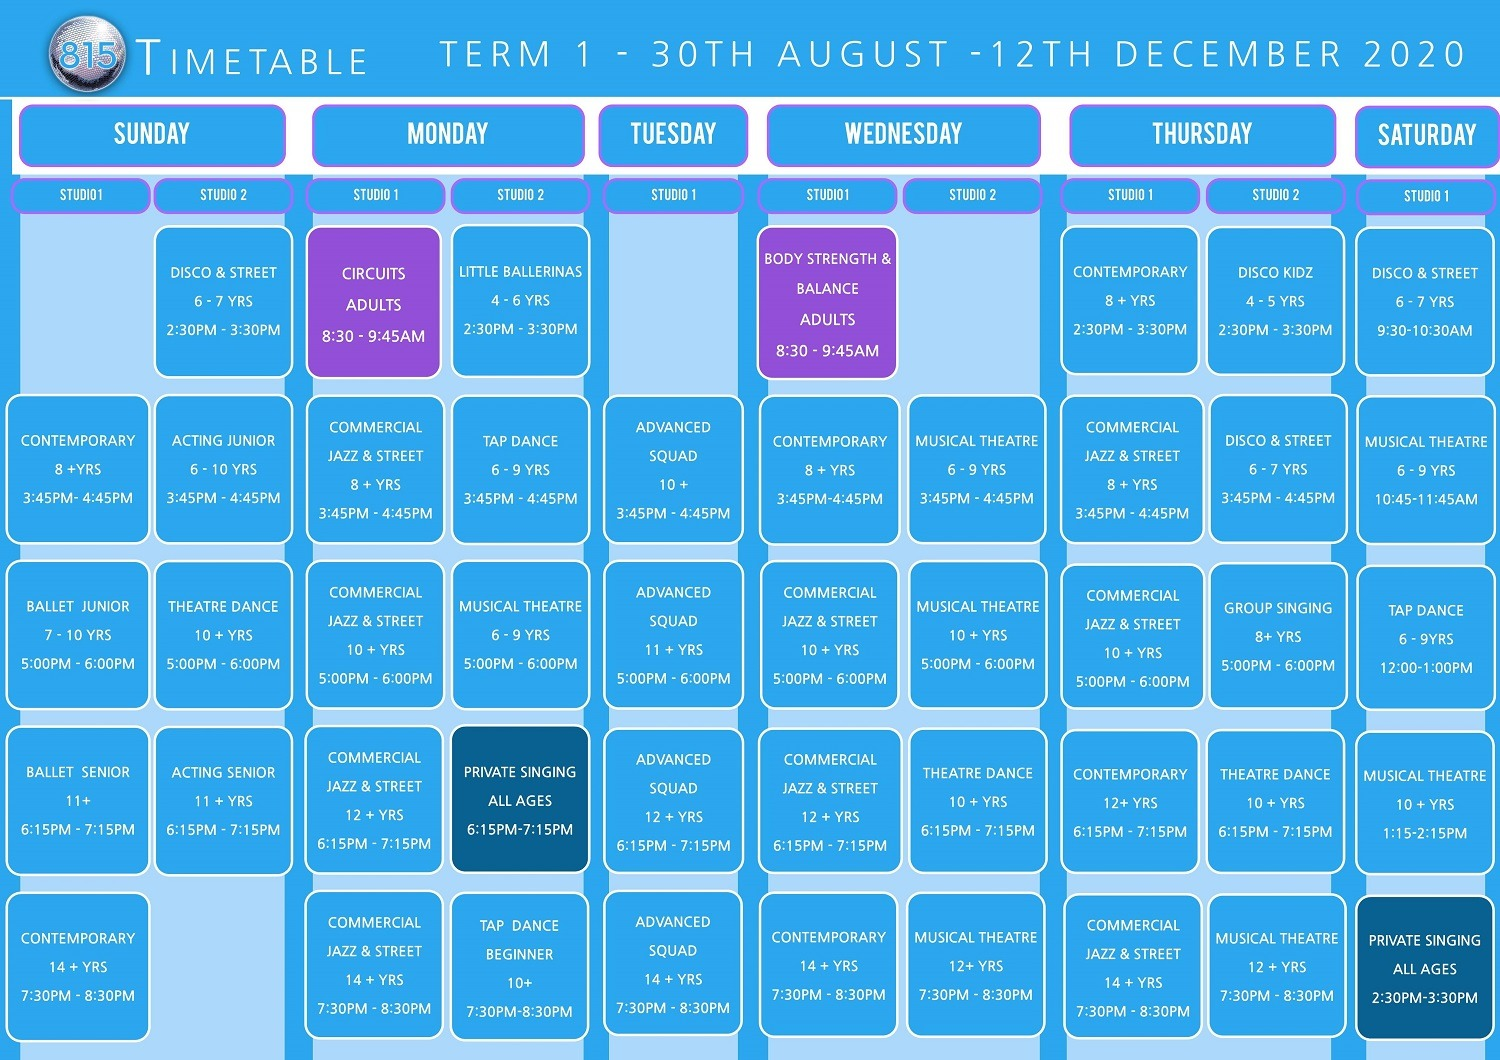 815 Dance & Performing Arts Online Timetable Term 1 2020-2021